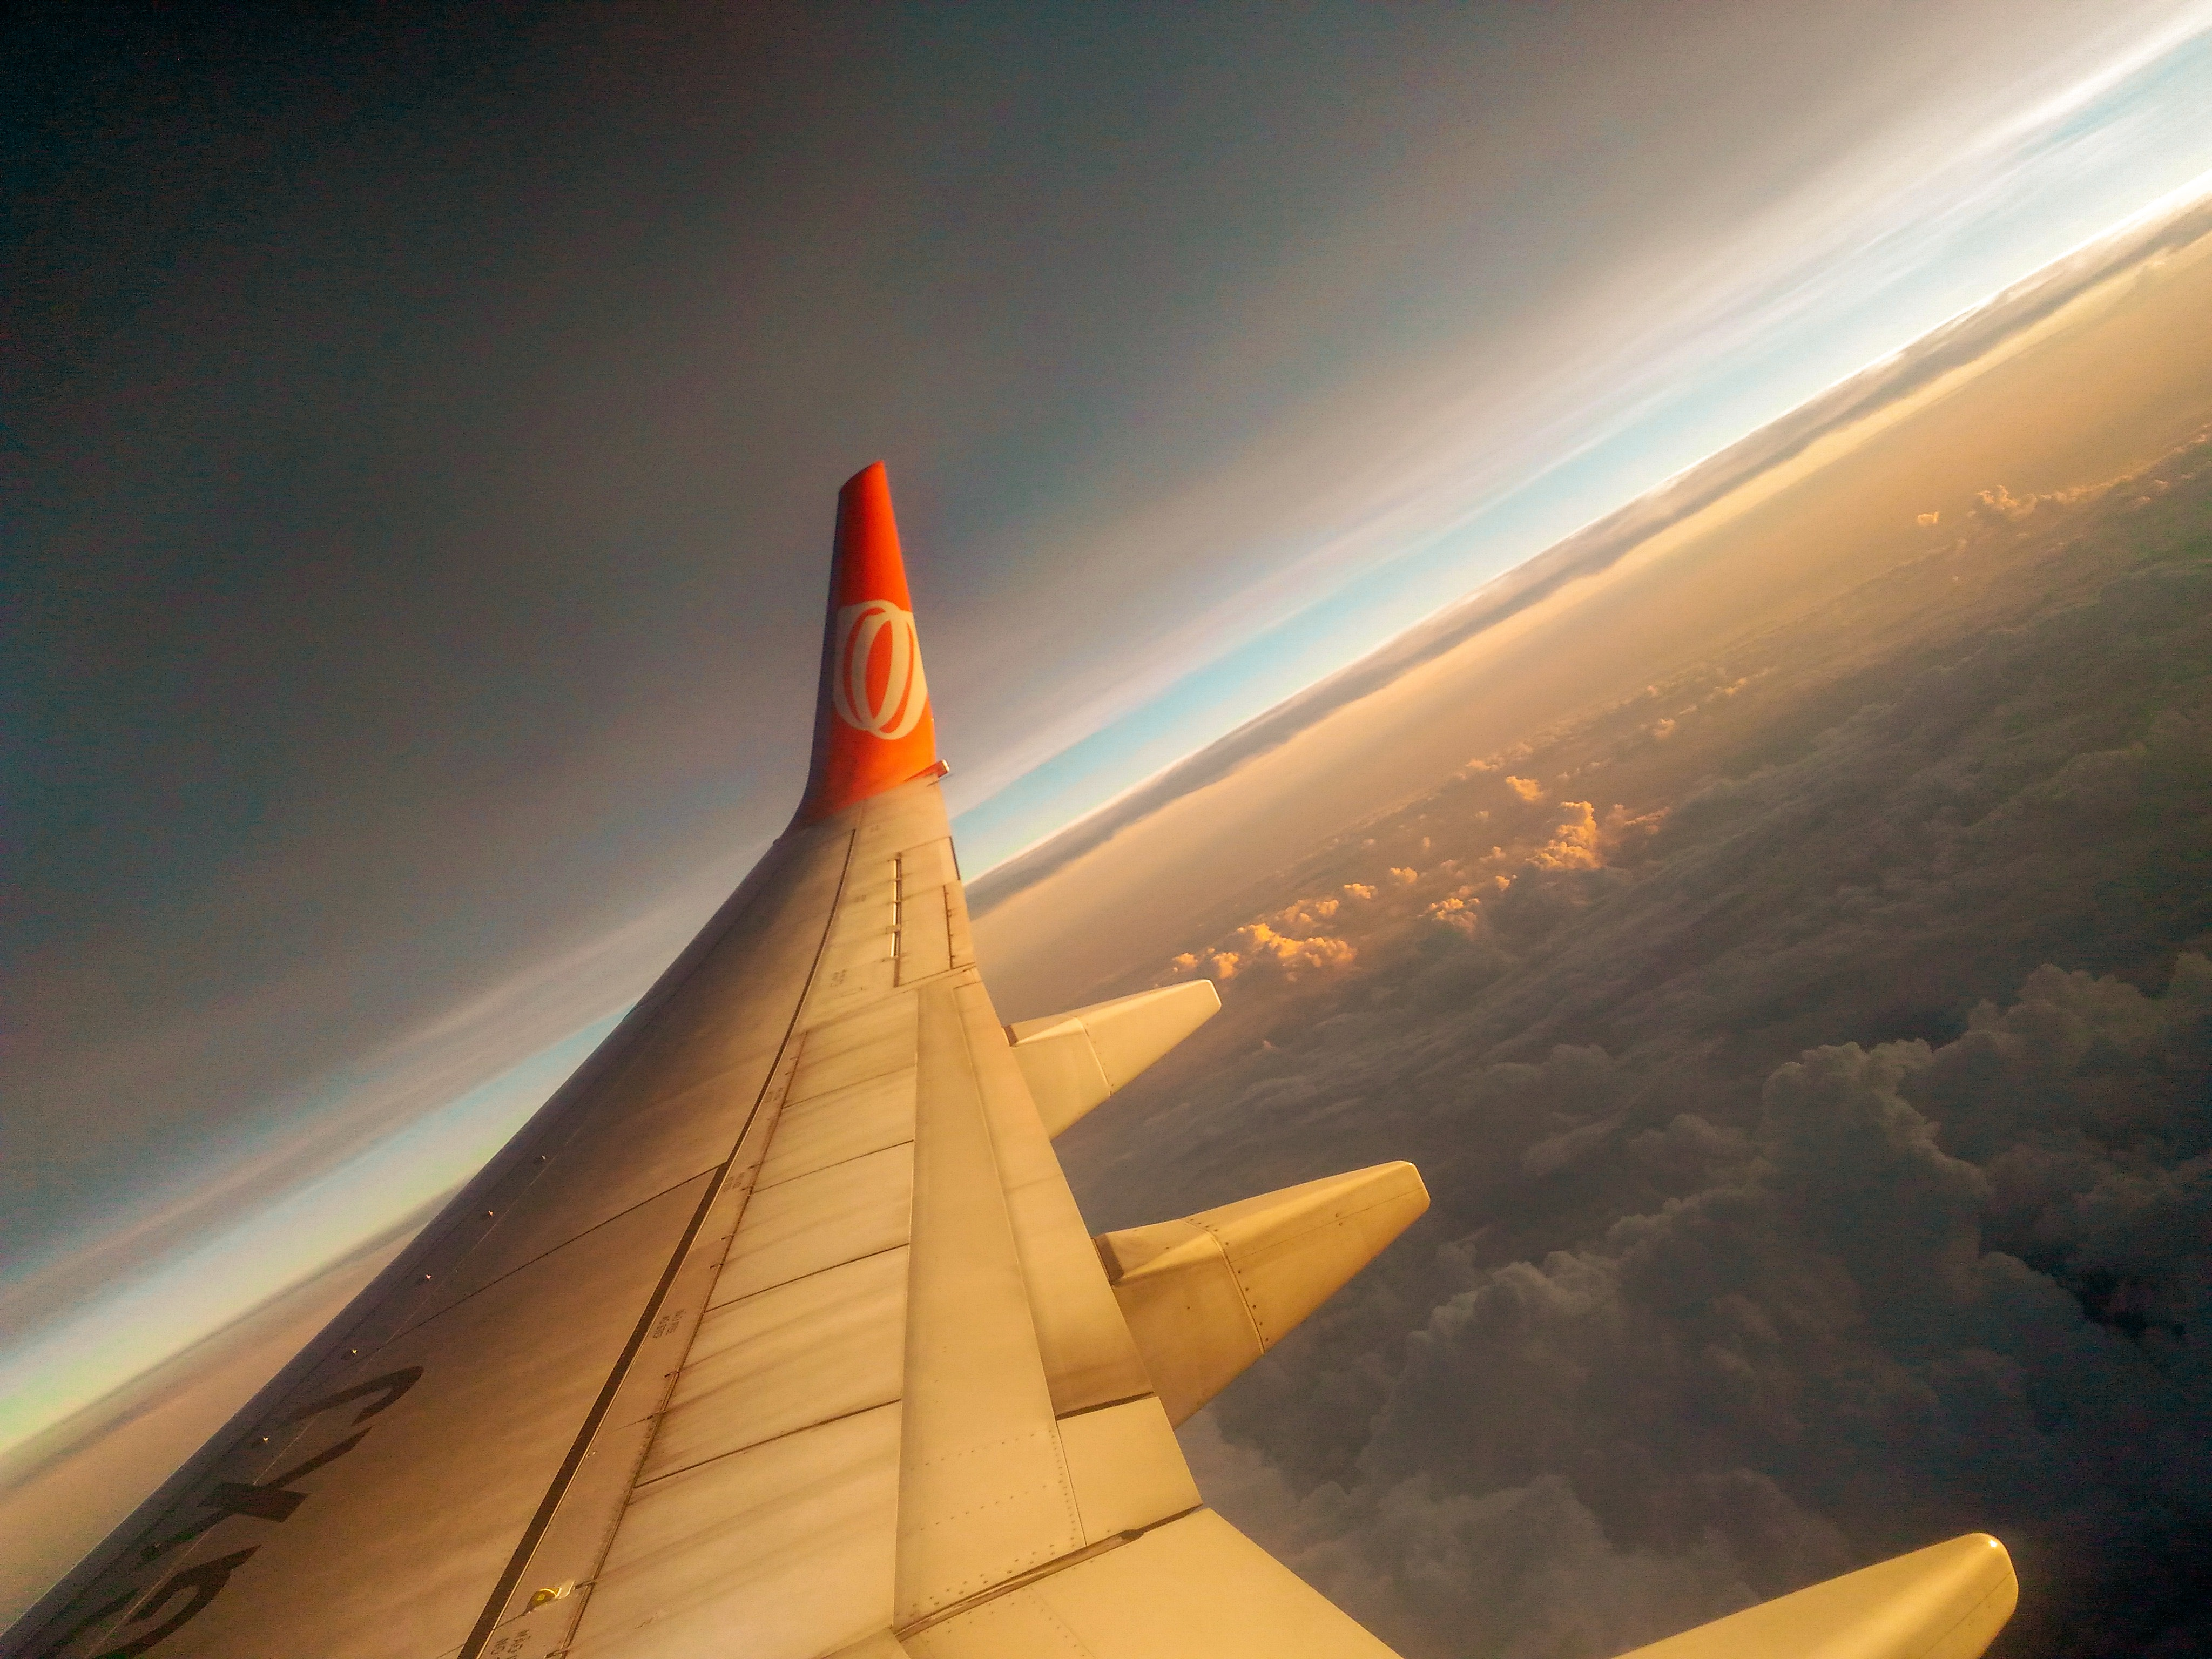 Free stock photo of aircraft, aircraft wing, airplane